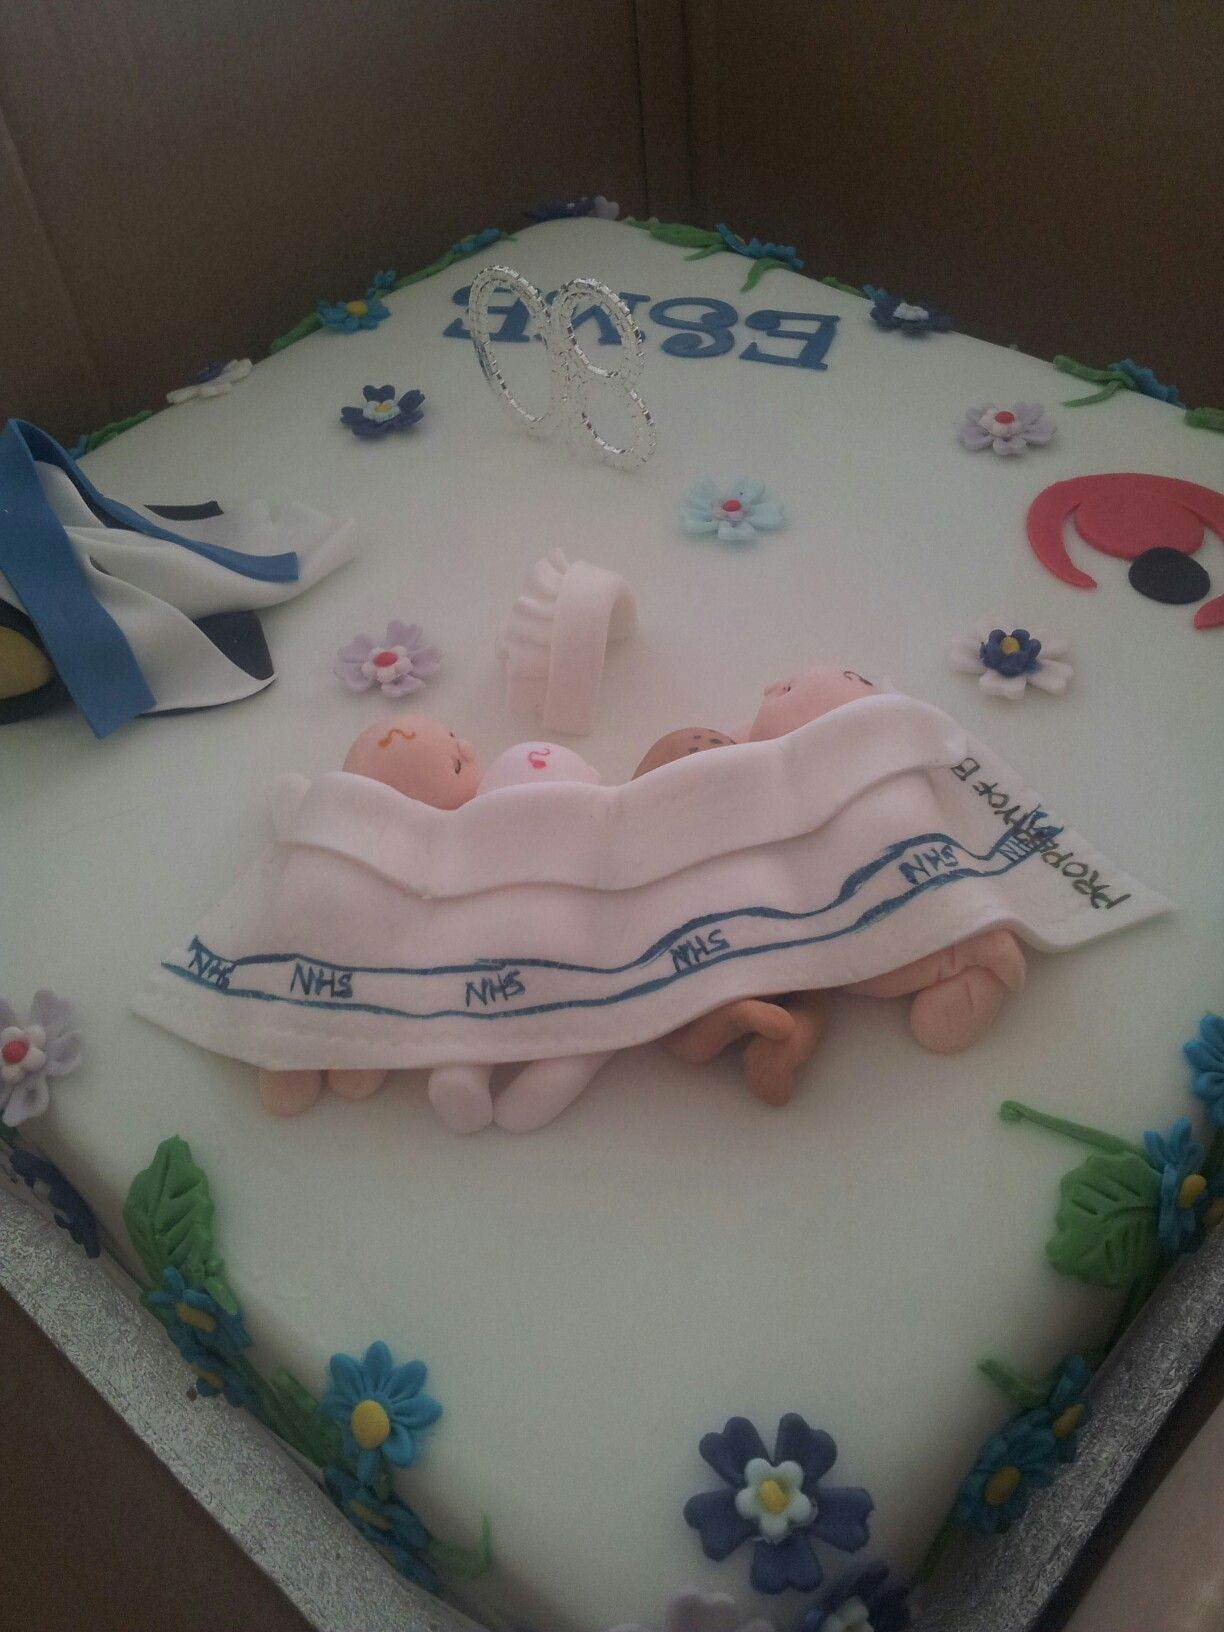 Midwife Birthday Cake Midwife Pinterest Birthday Cakes And Cake